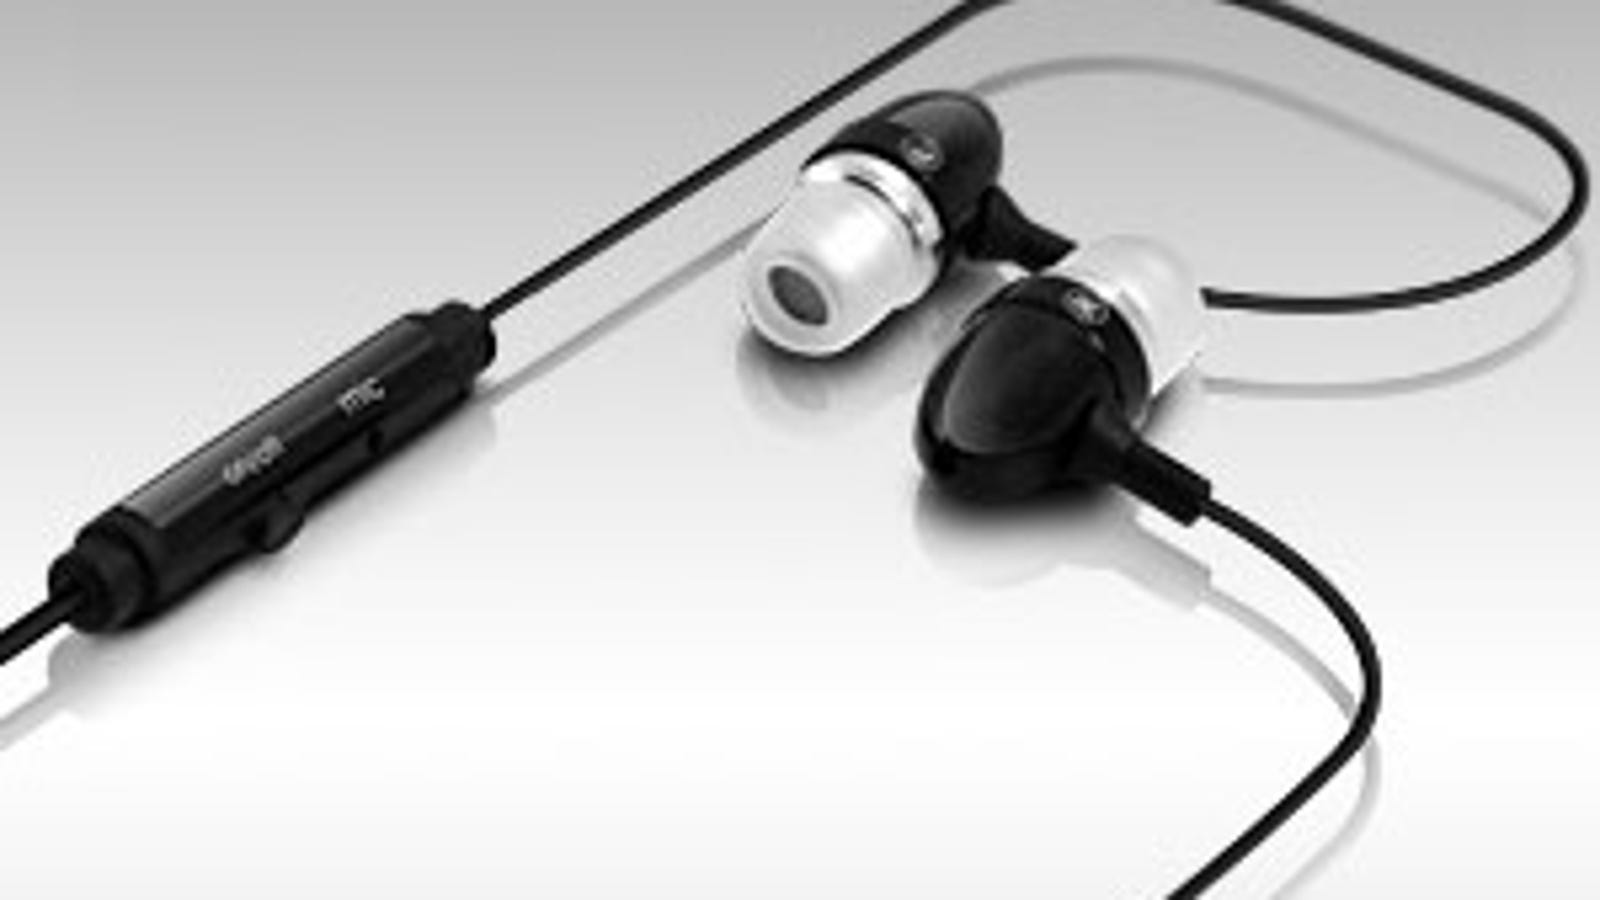 klipsch earbuds green - RadTech ProCable iPhone Headphones Are a Cheap Alternative